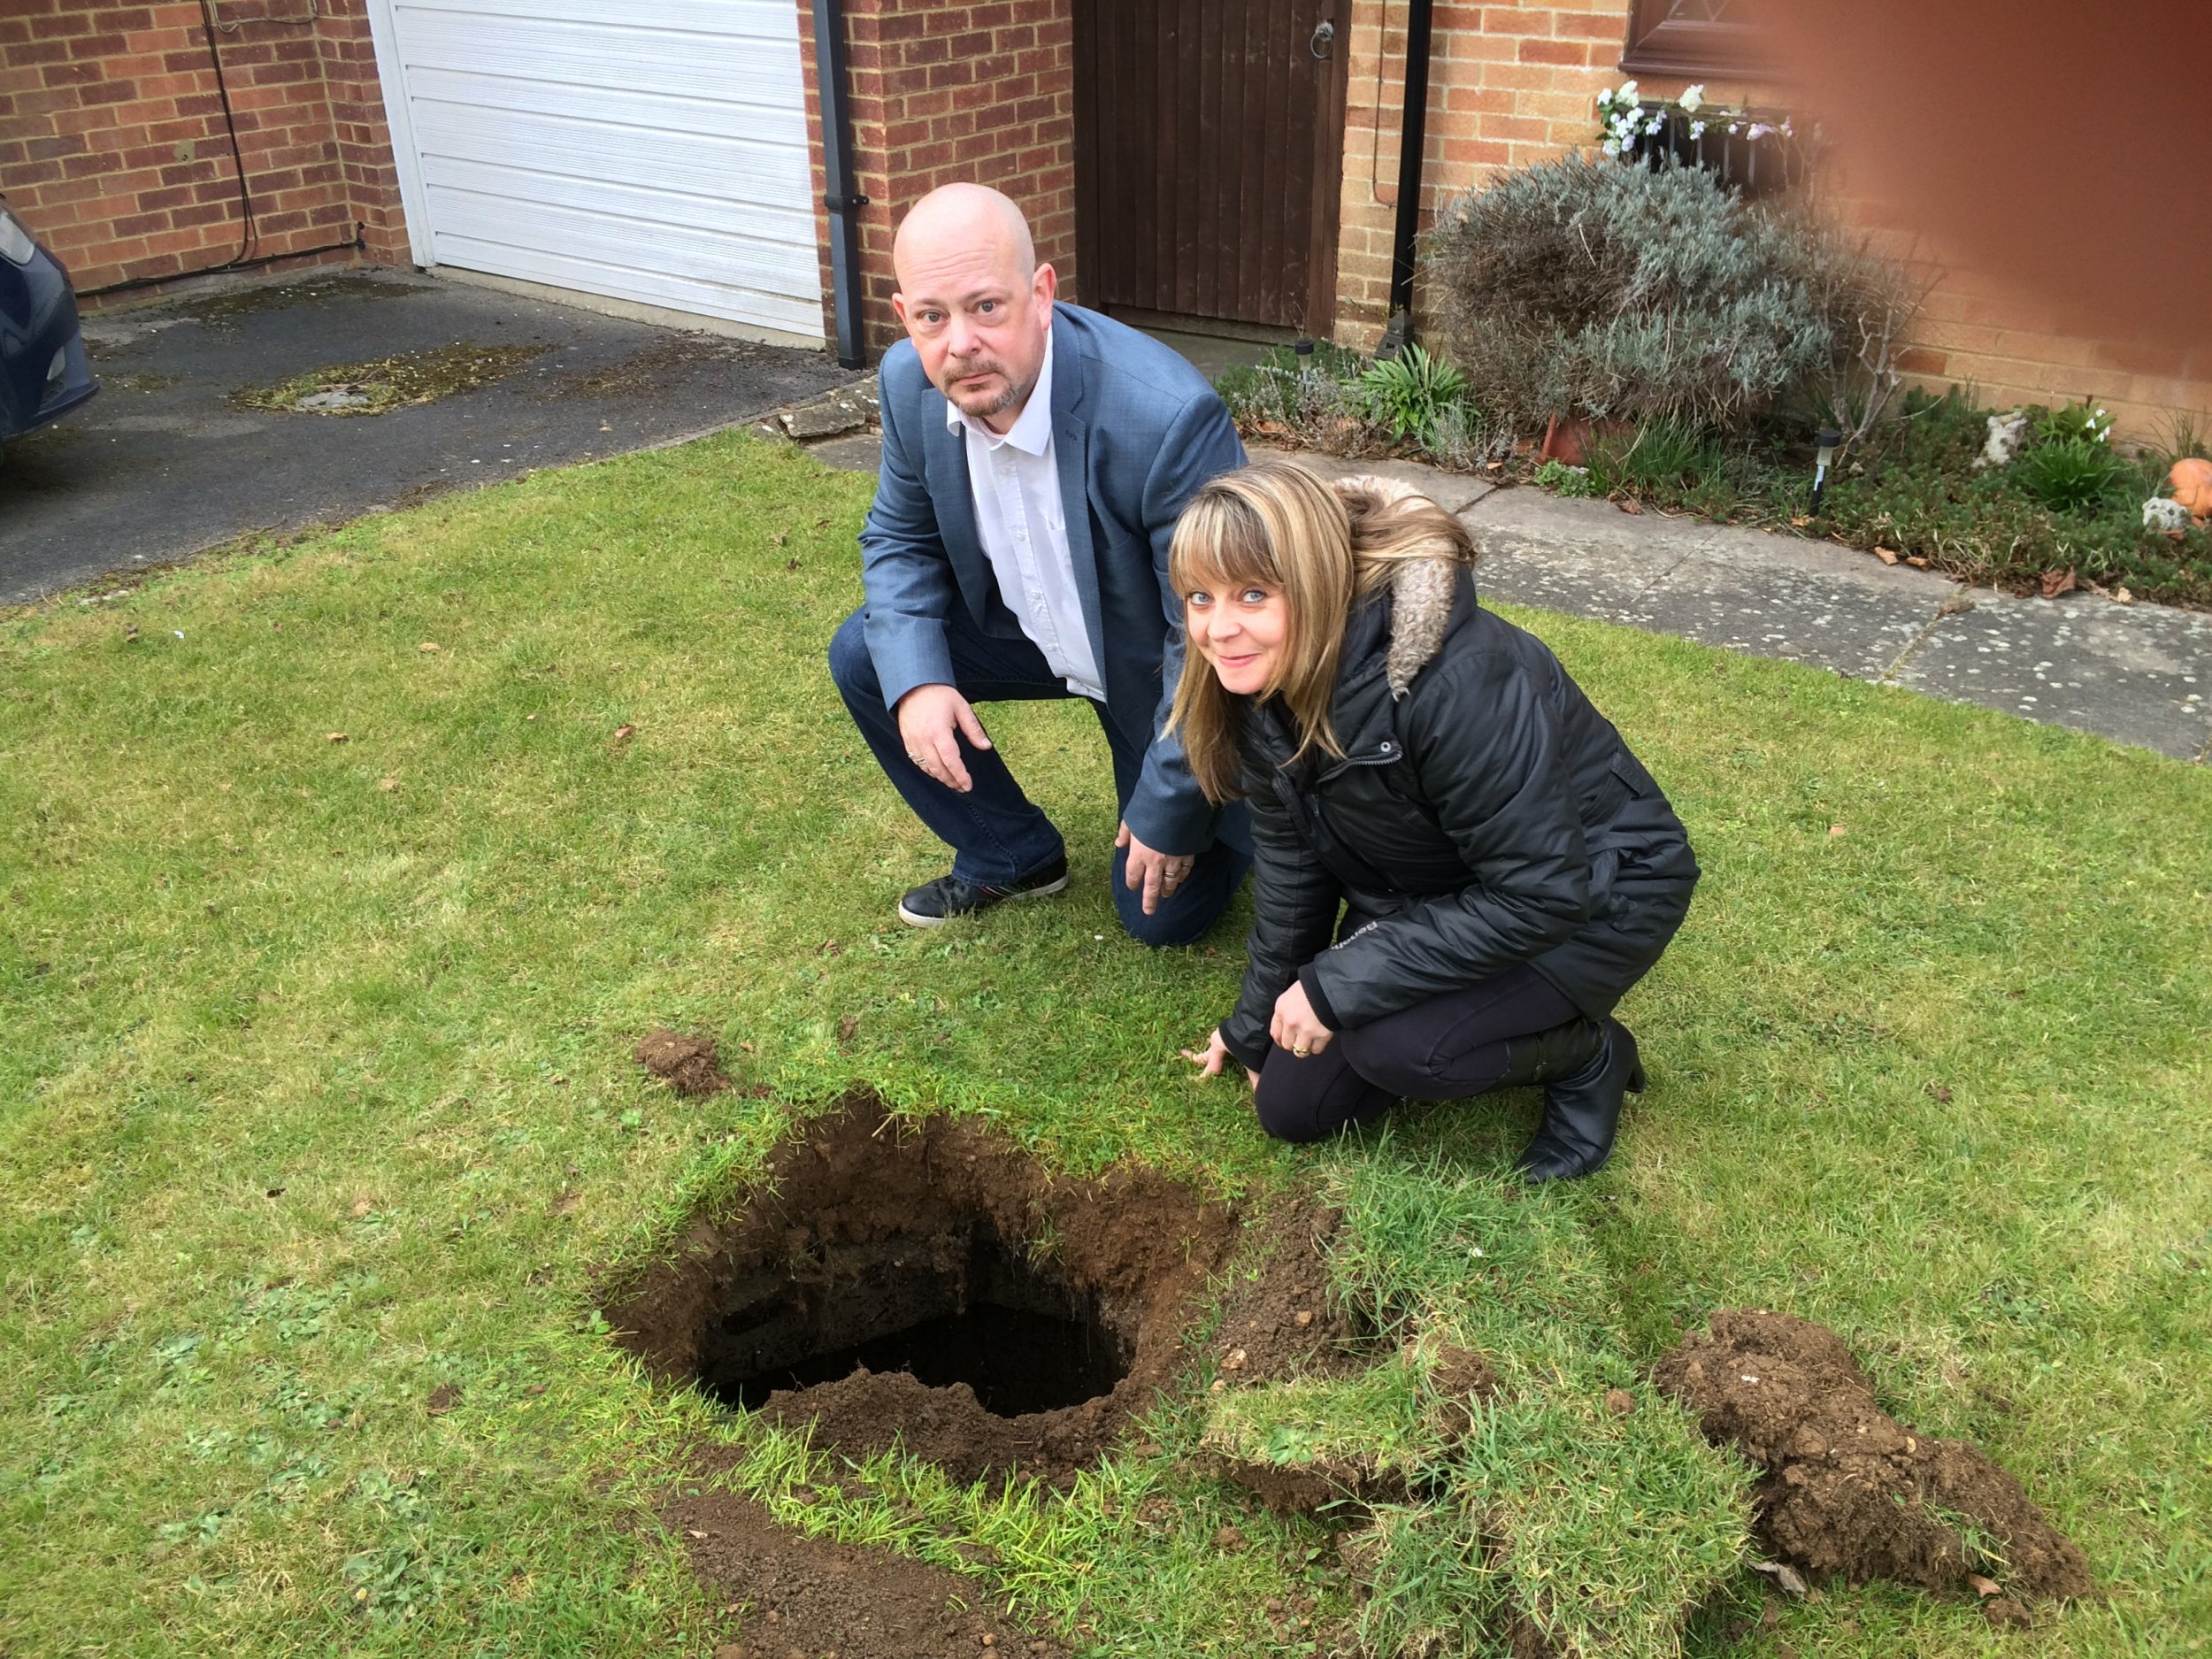 Kevin and Emma James who found a hole in their front garden. See Masons copy MNHOLE: A family have been left baffled after a deep hole opened up on their front lawn with rusty steps leading into the darkness. The more than two metre deep hole appeared when home owner Emma James was mowing the lawn but the cause is still a mystery. There are a few rusty steps steps leading down into the dark two by two feet hole which currently isn't big enough to squeeze down. Emma, 44, and her husband Kevin, 48, even contacted the company who built the house back in 1984 with no luck of finding out what the hole leads to.